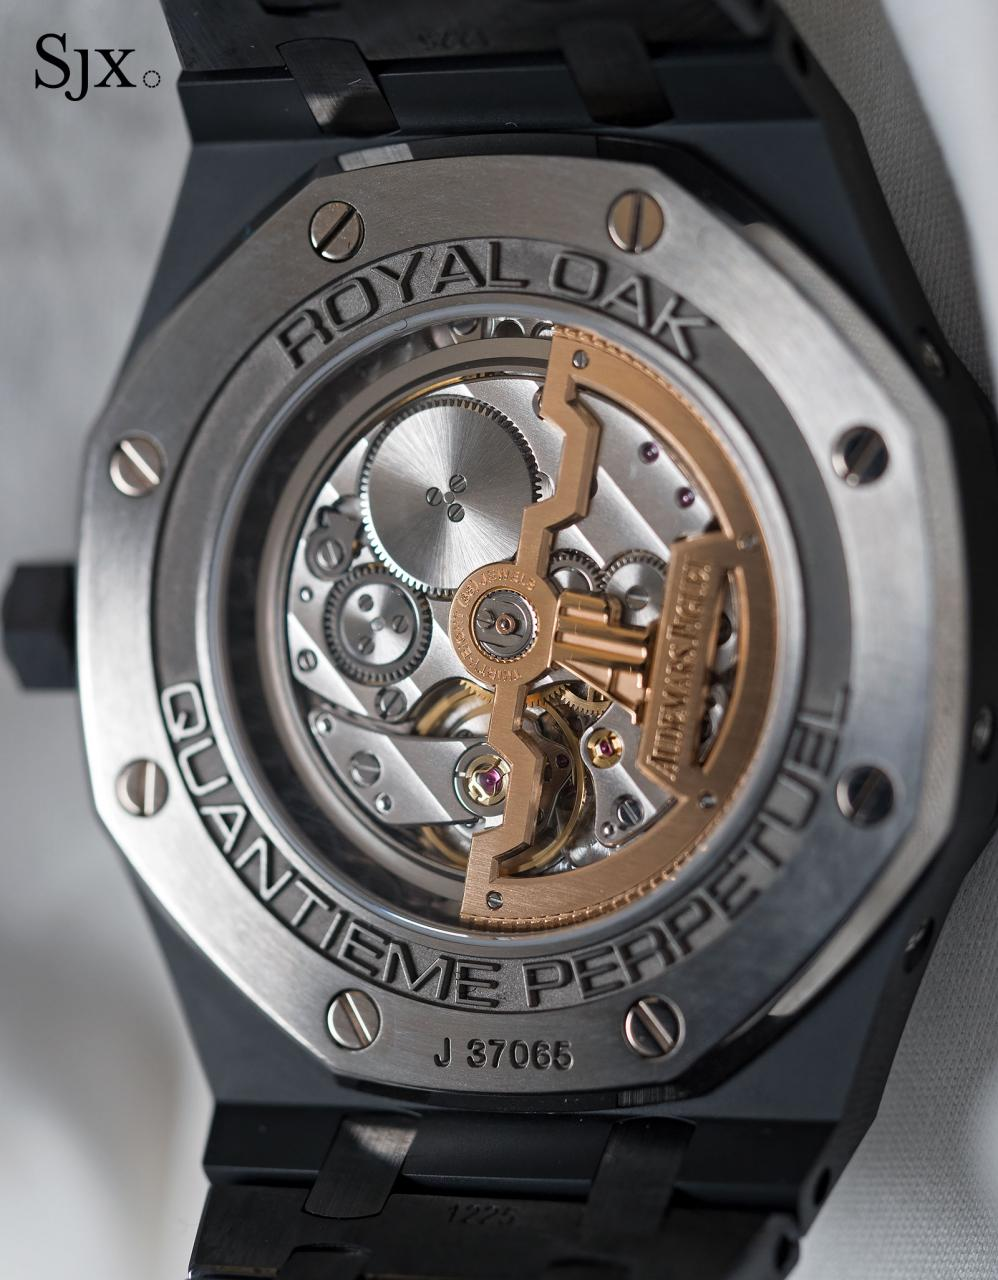 Audemars Piguet Royal Oak Perpetual Calendar Black Ceramic 04